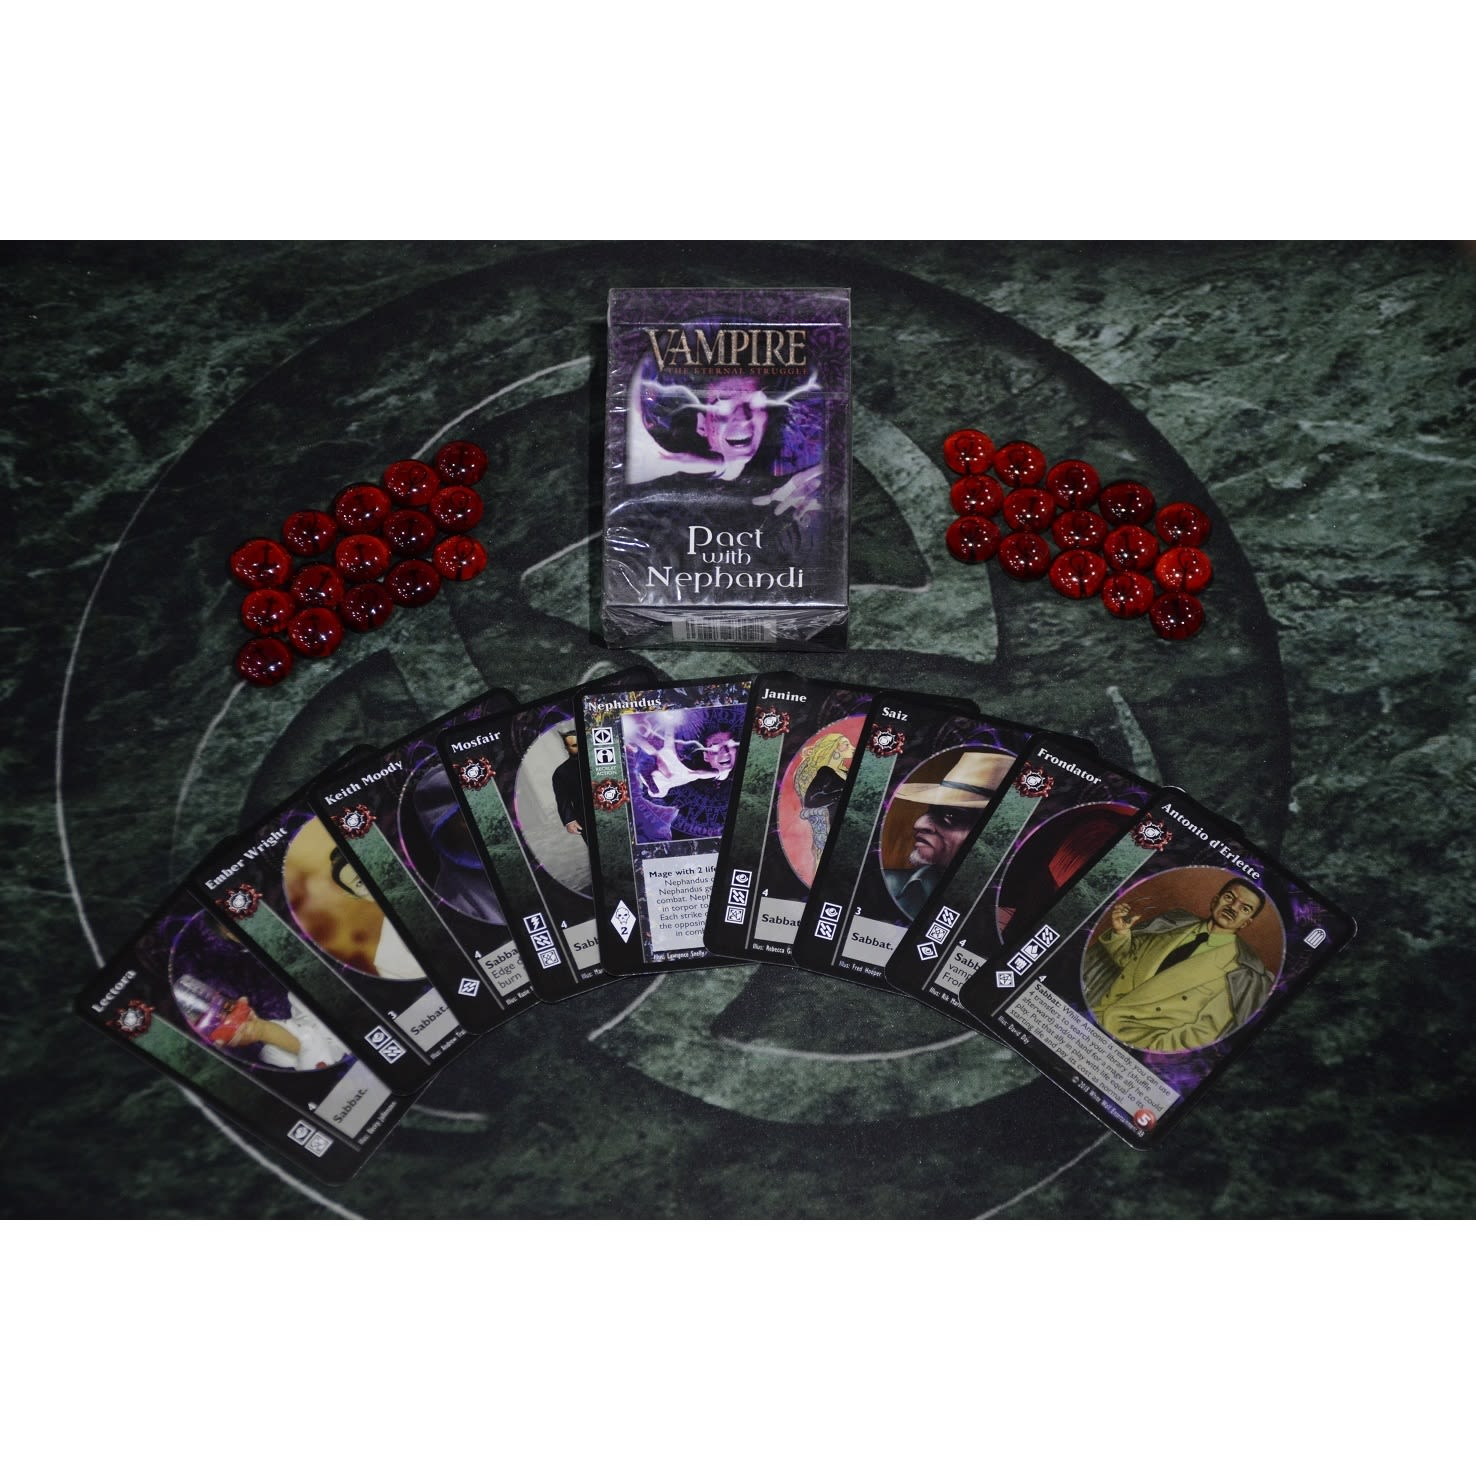 Sabbat Pact with Nephandi - Tremere Preconstructed Deck